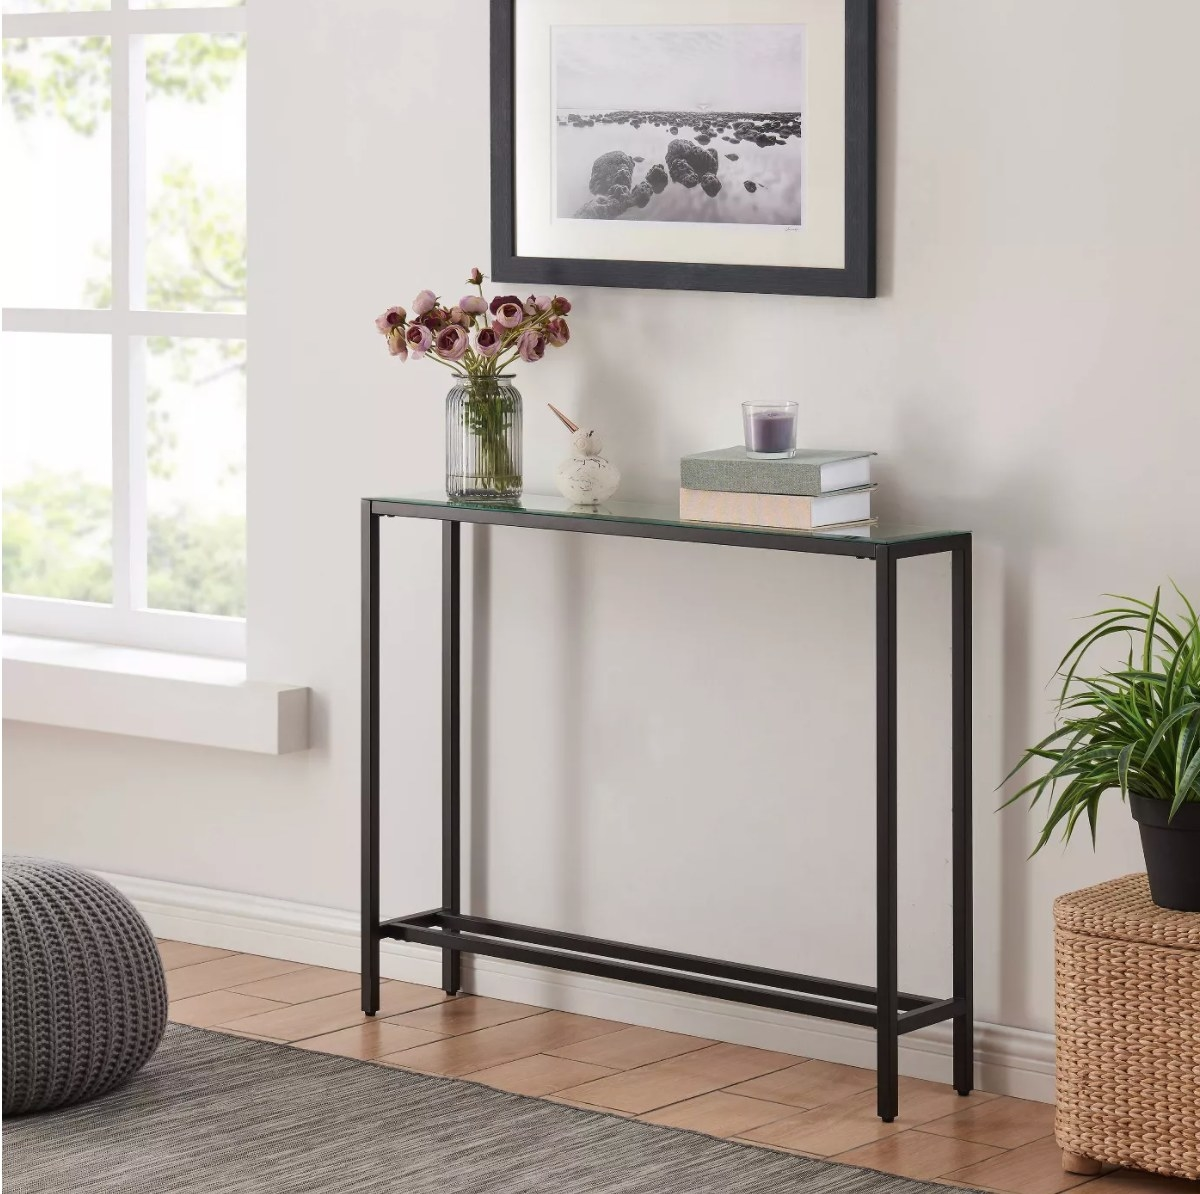 The narrow console table in black with a glass top holding books, candles, and flwoers